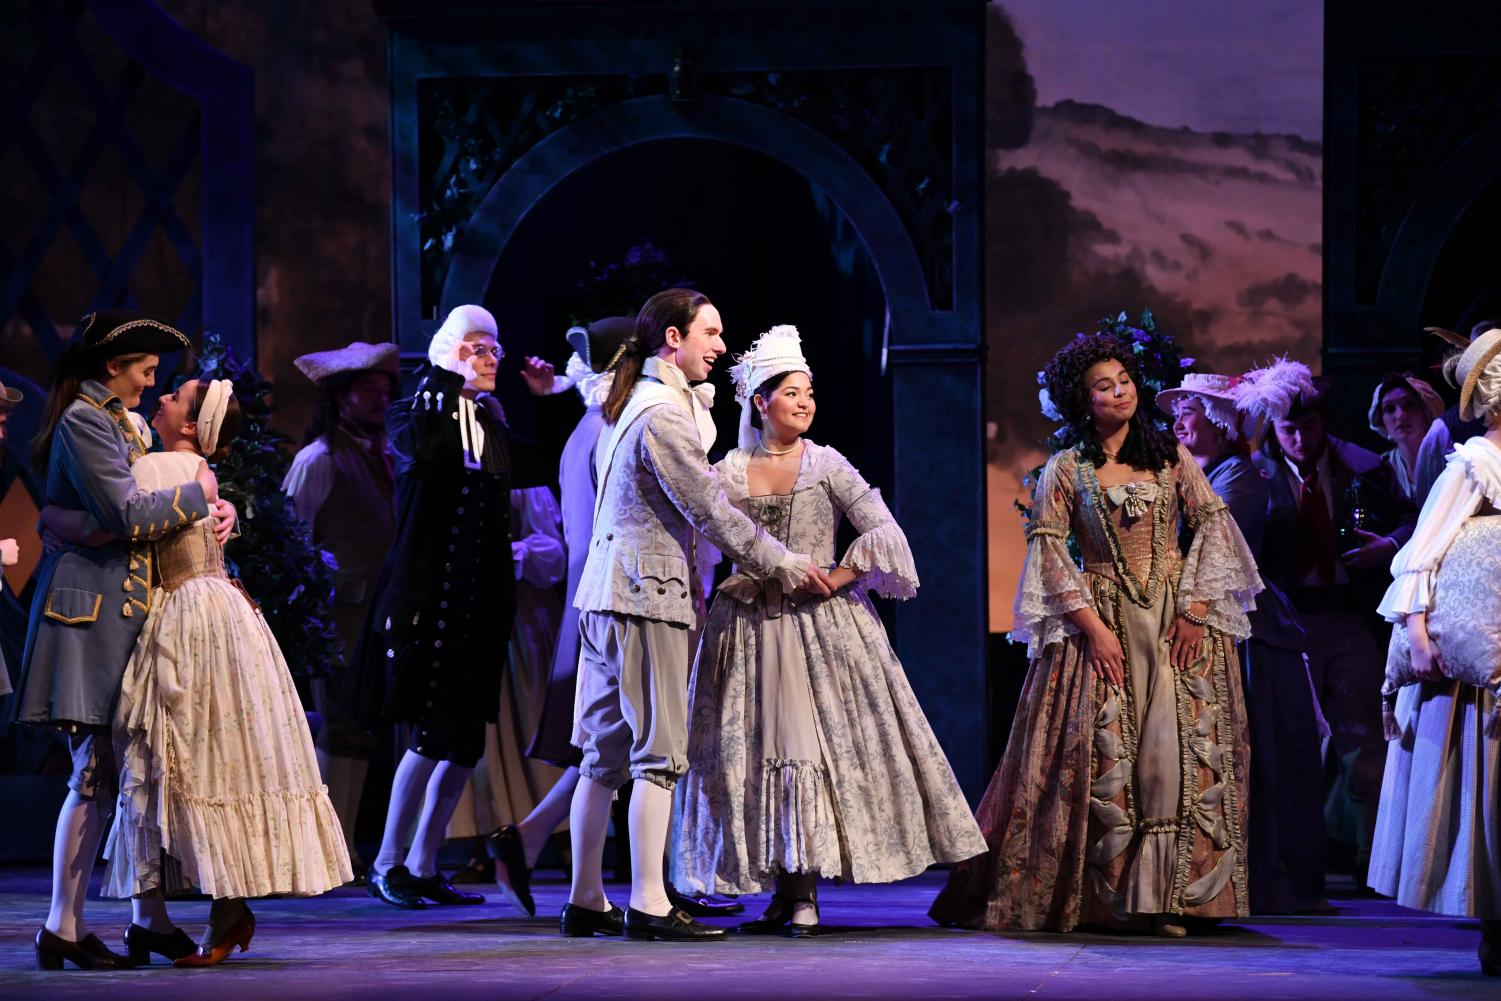 Students perform Mozart's opera Le nozze di Figaro, which opened Wednesday night in Hall Auditorium.